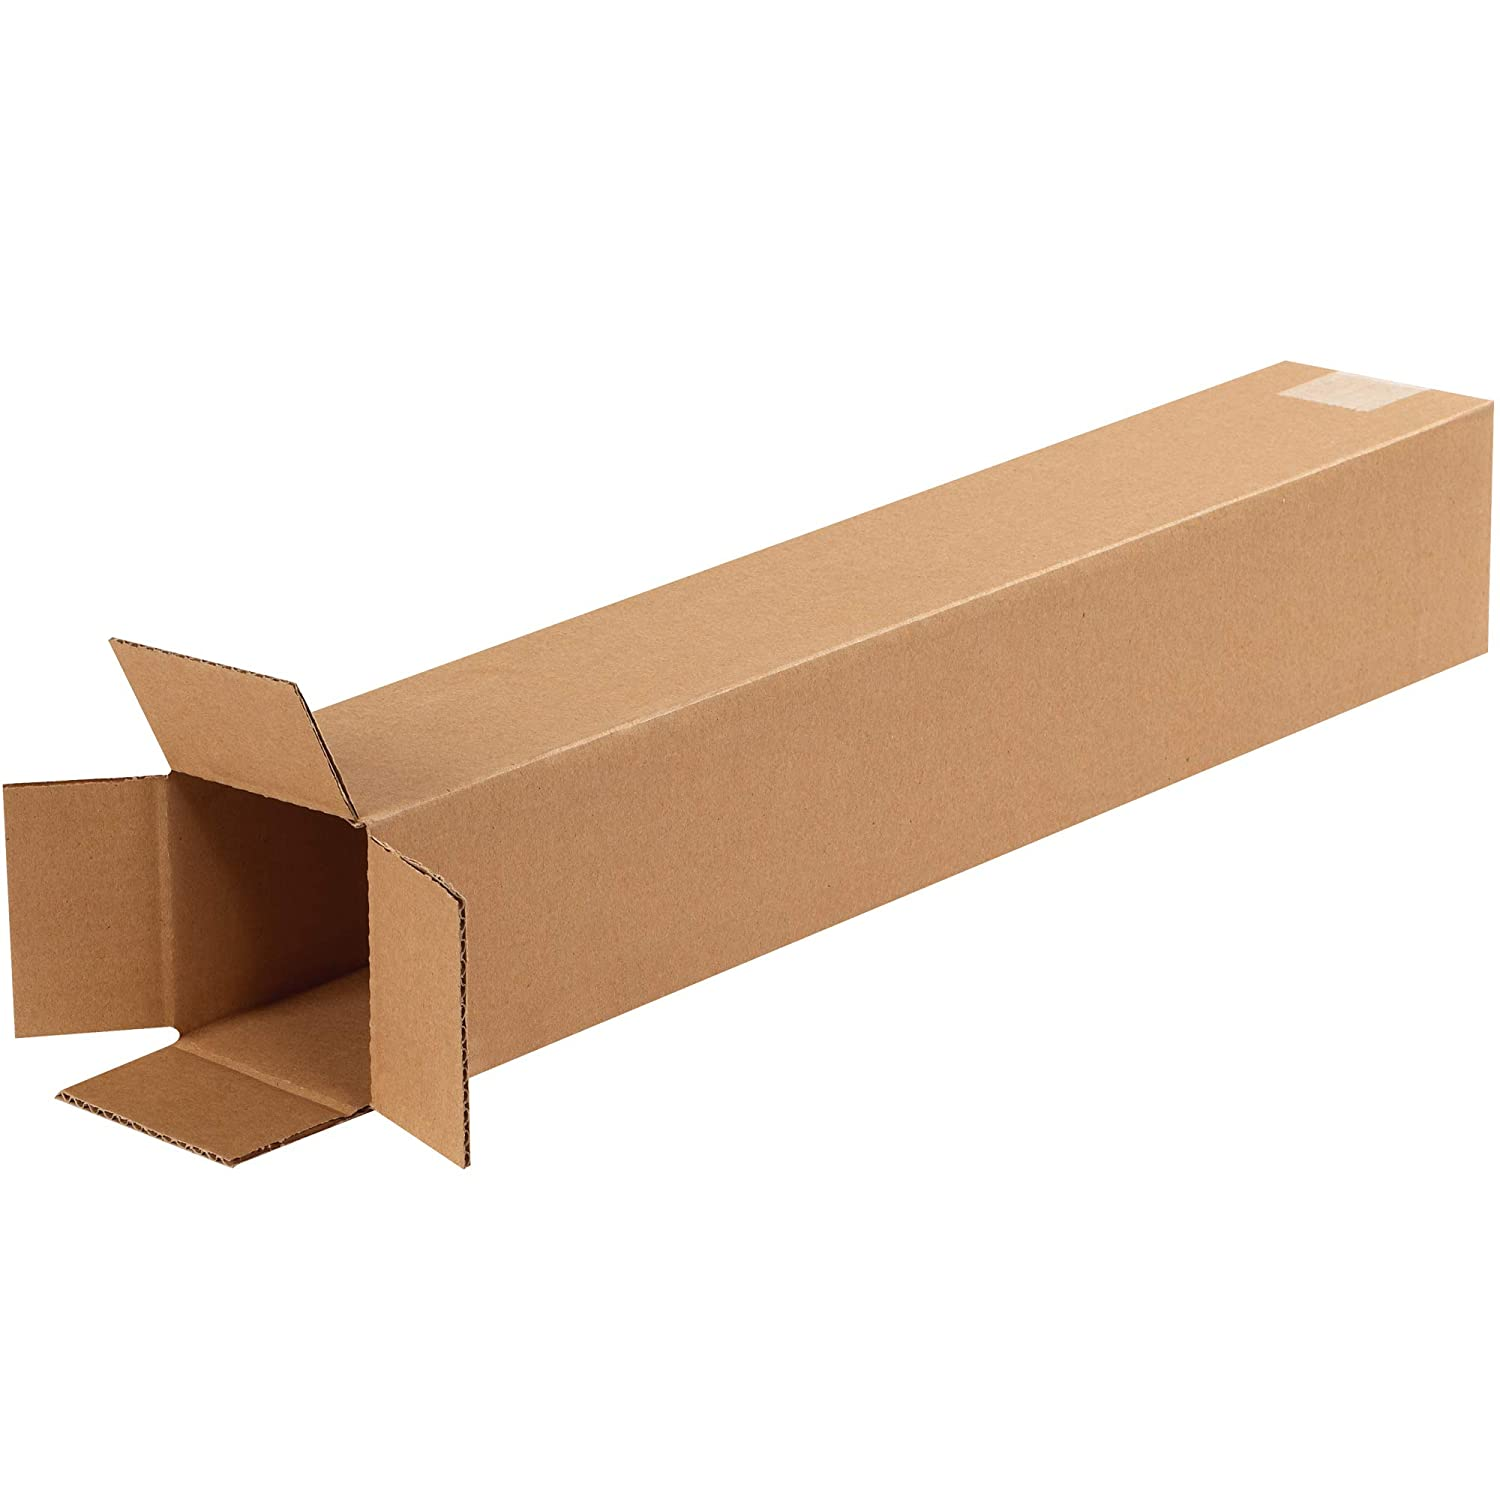 4x4x24 New Corrugated Boxes for Moving or Shipping Needs 32 ECT